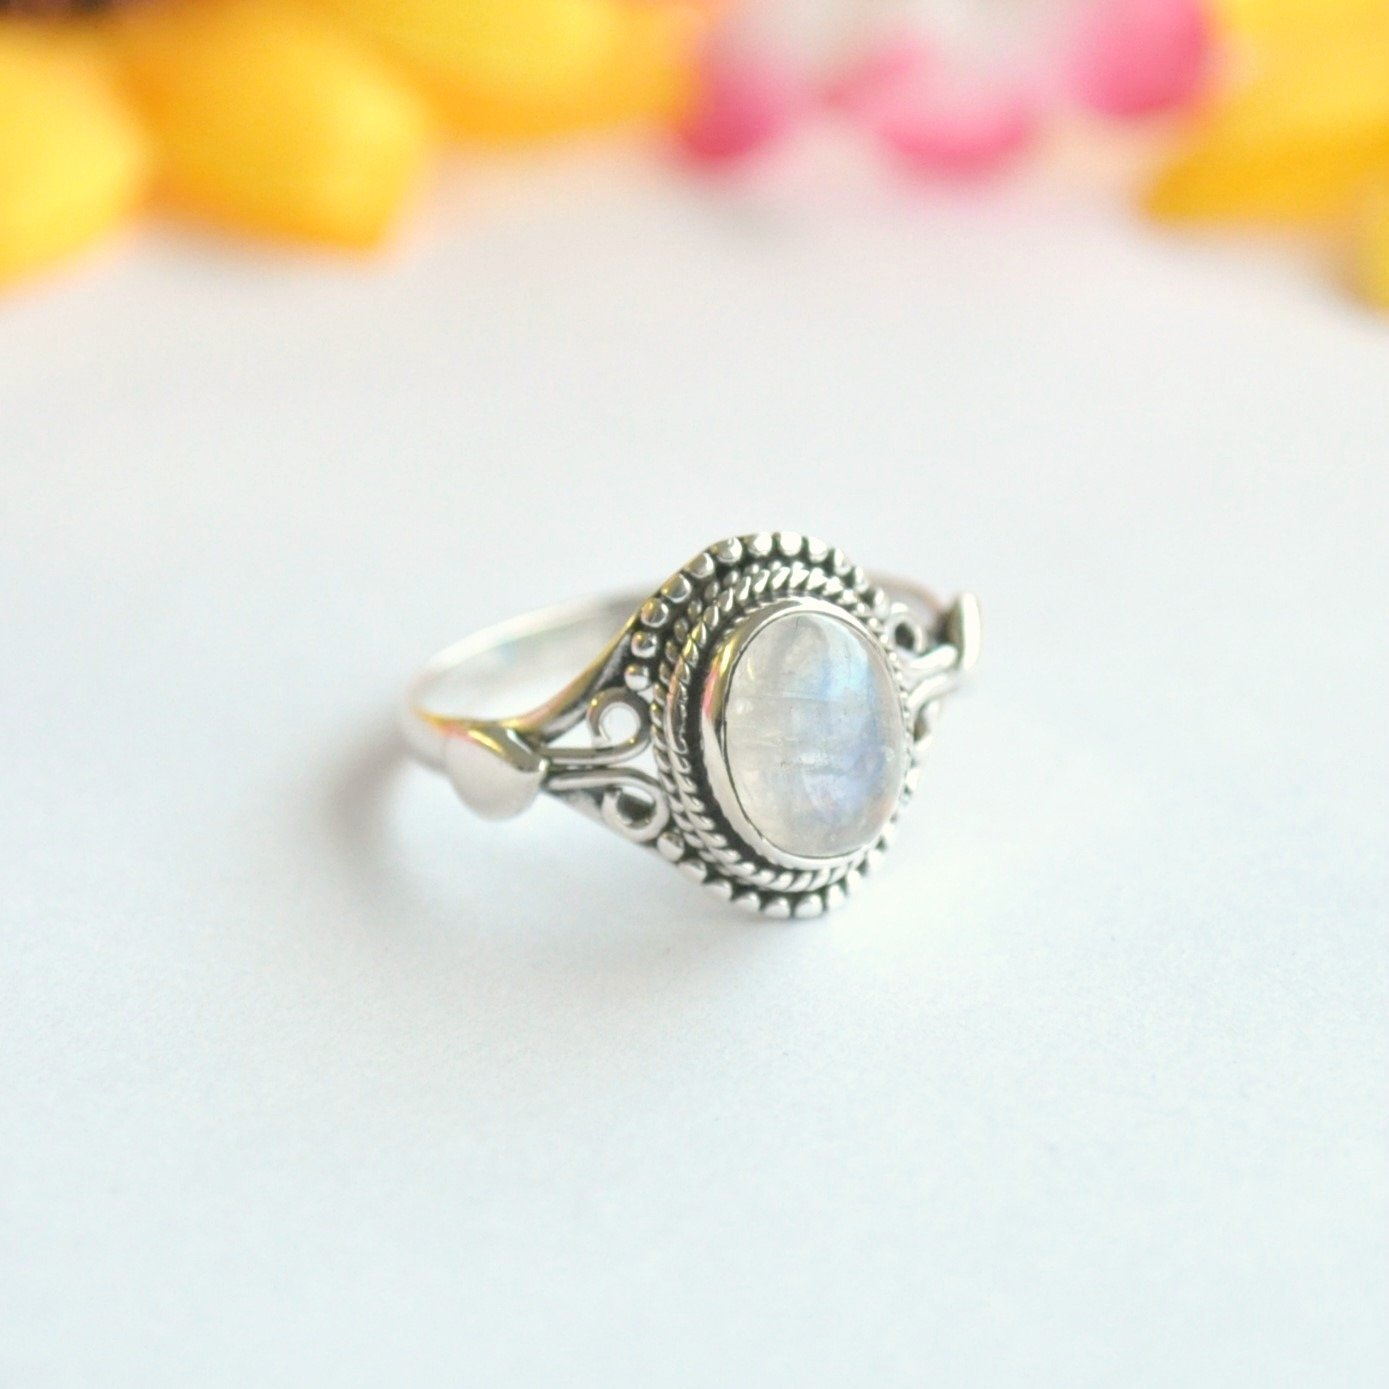 Rainbow Moonstone Sterling Silver Ring - Minimum Mouse